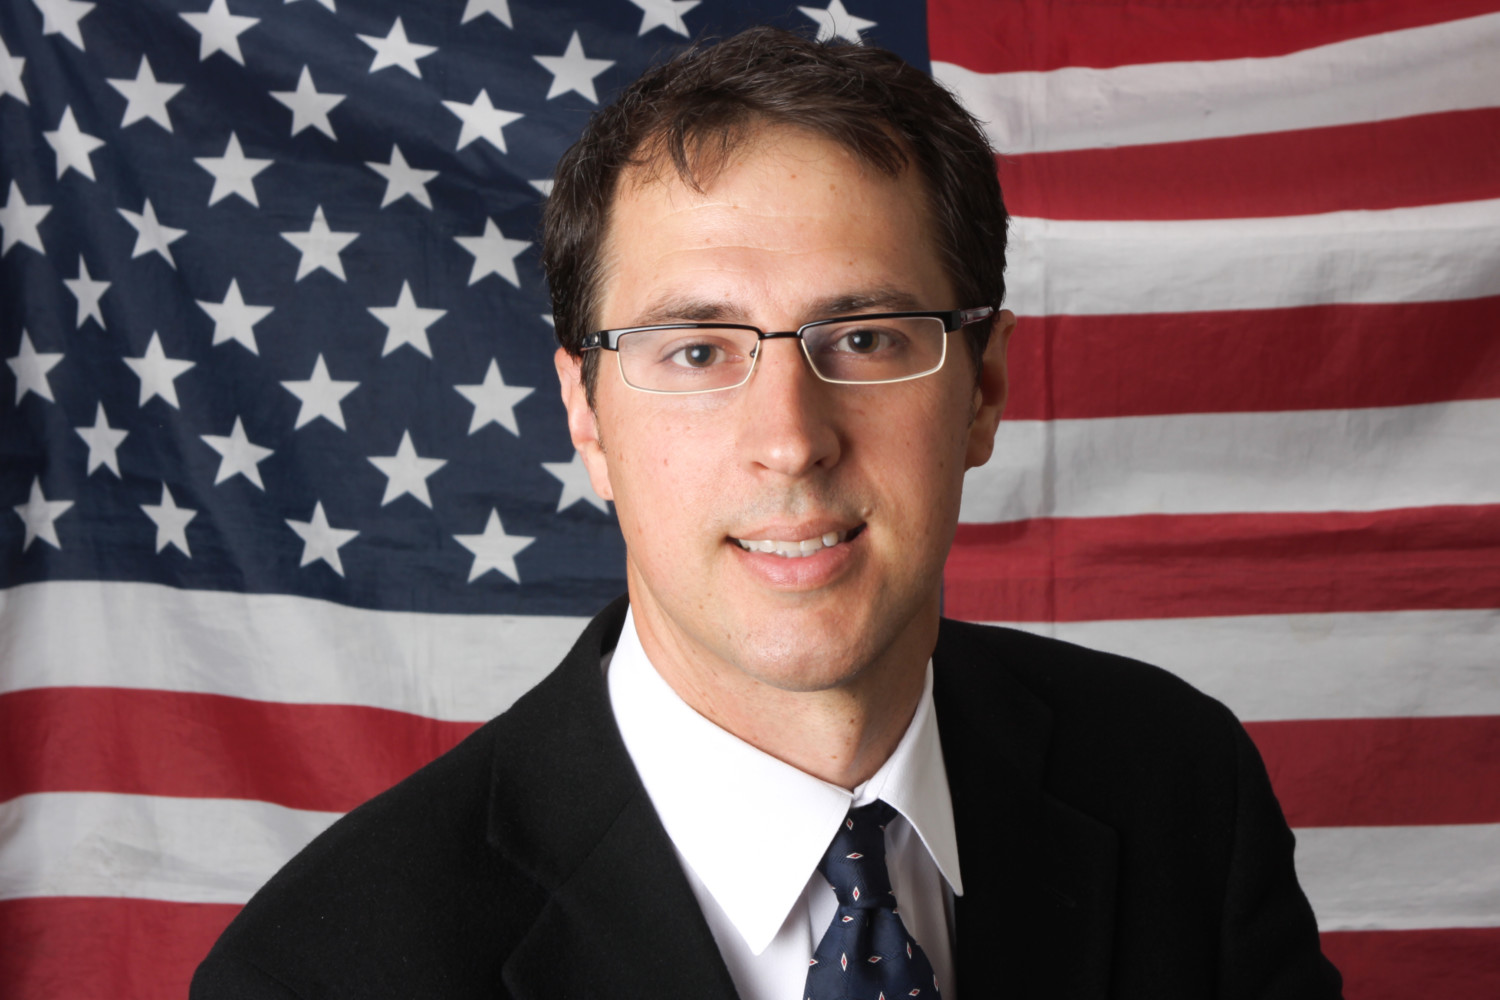 Krouse announces bid for State Assembly